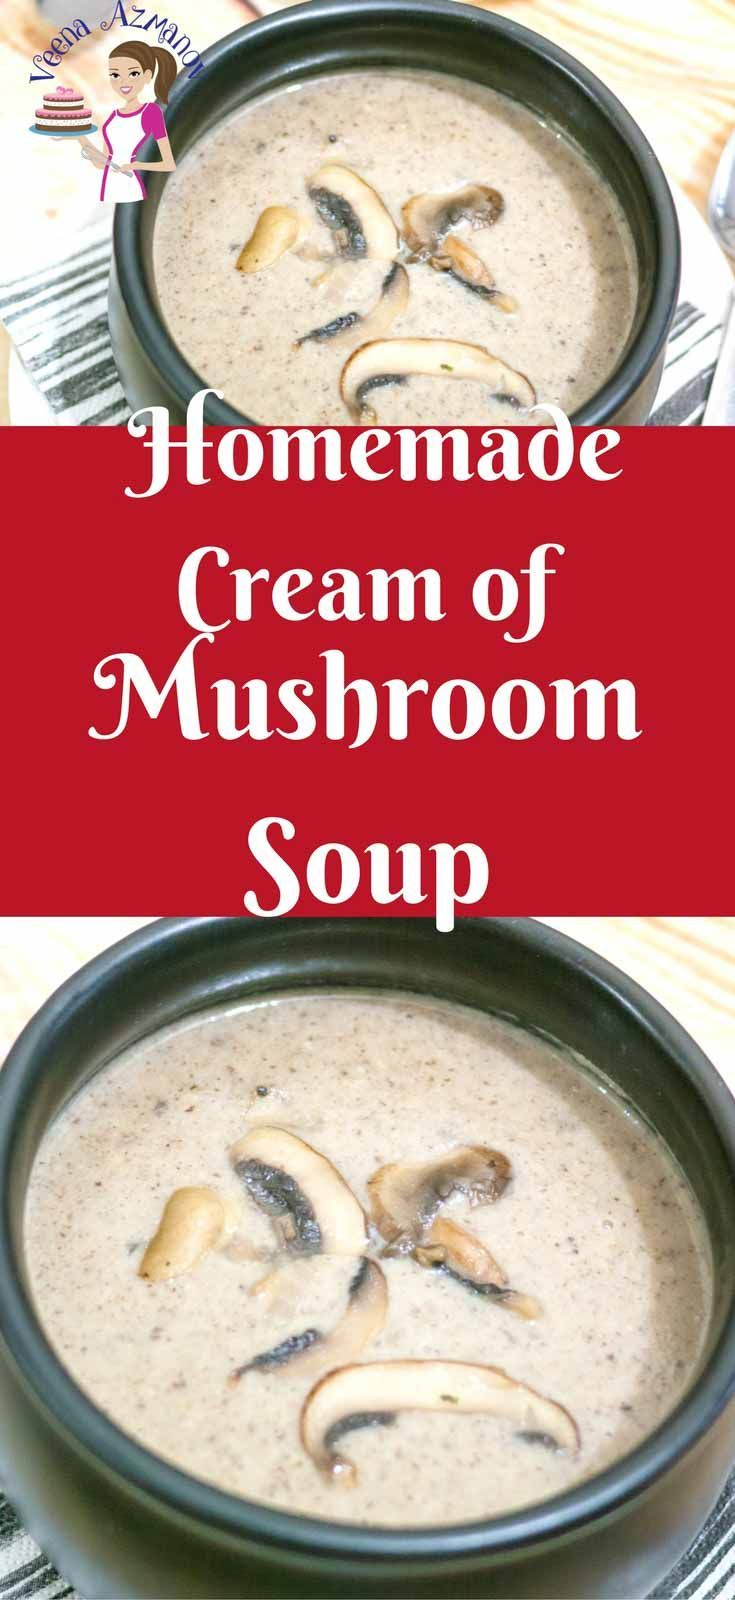 Simple, earthy, hearty, flavorful and fulfilling this homemade cream of mushroom soup is so easy to make with just a few simple ingredients you definitely have on hand. The best part it takes only 30 minutes to prepare, add a side of salad and you have dinner served. #creamofmushroom #soup #mushroom #soups #howto #cook #soupathome #recipe #mushroomsoup via @Veenaazmanov